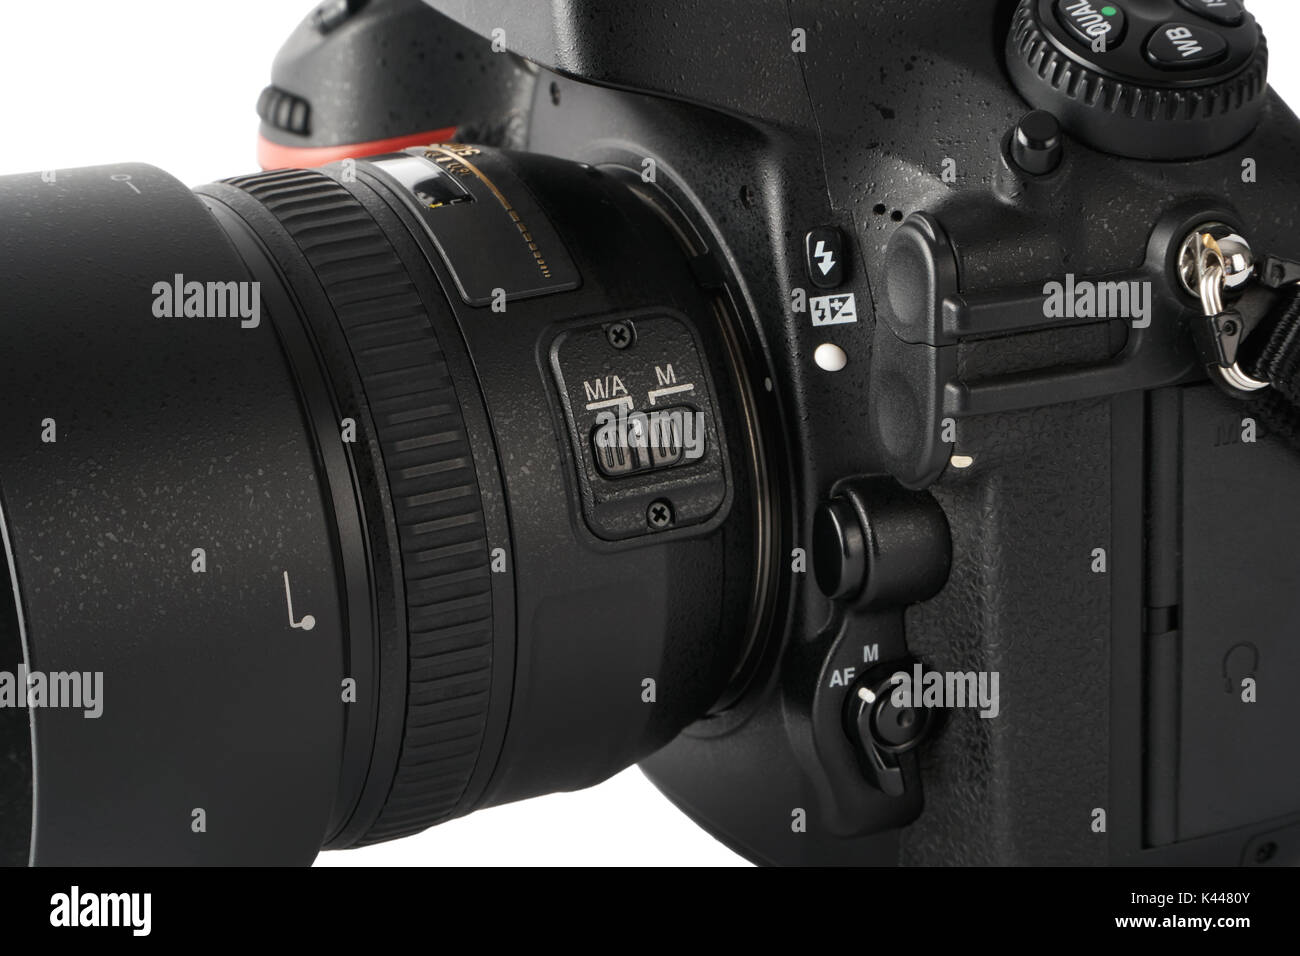 closeup of auto focus and manual focus switch on a dslr camera with rh alamy com Digital SLR Manual Setting Pentax Camera Bodies